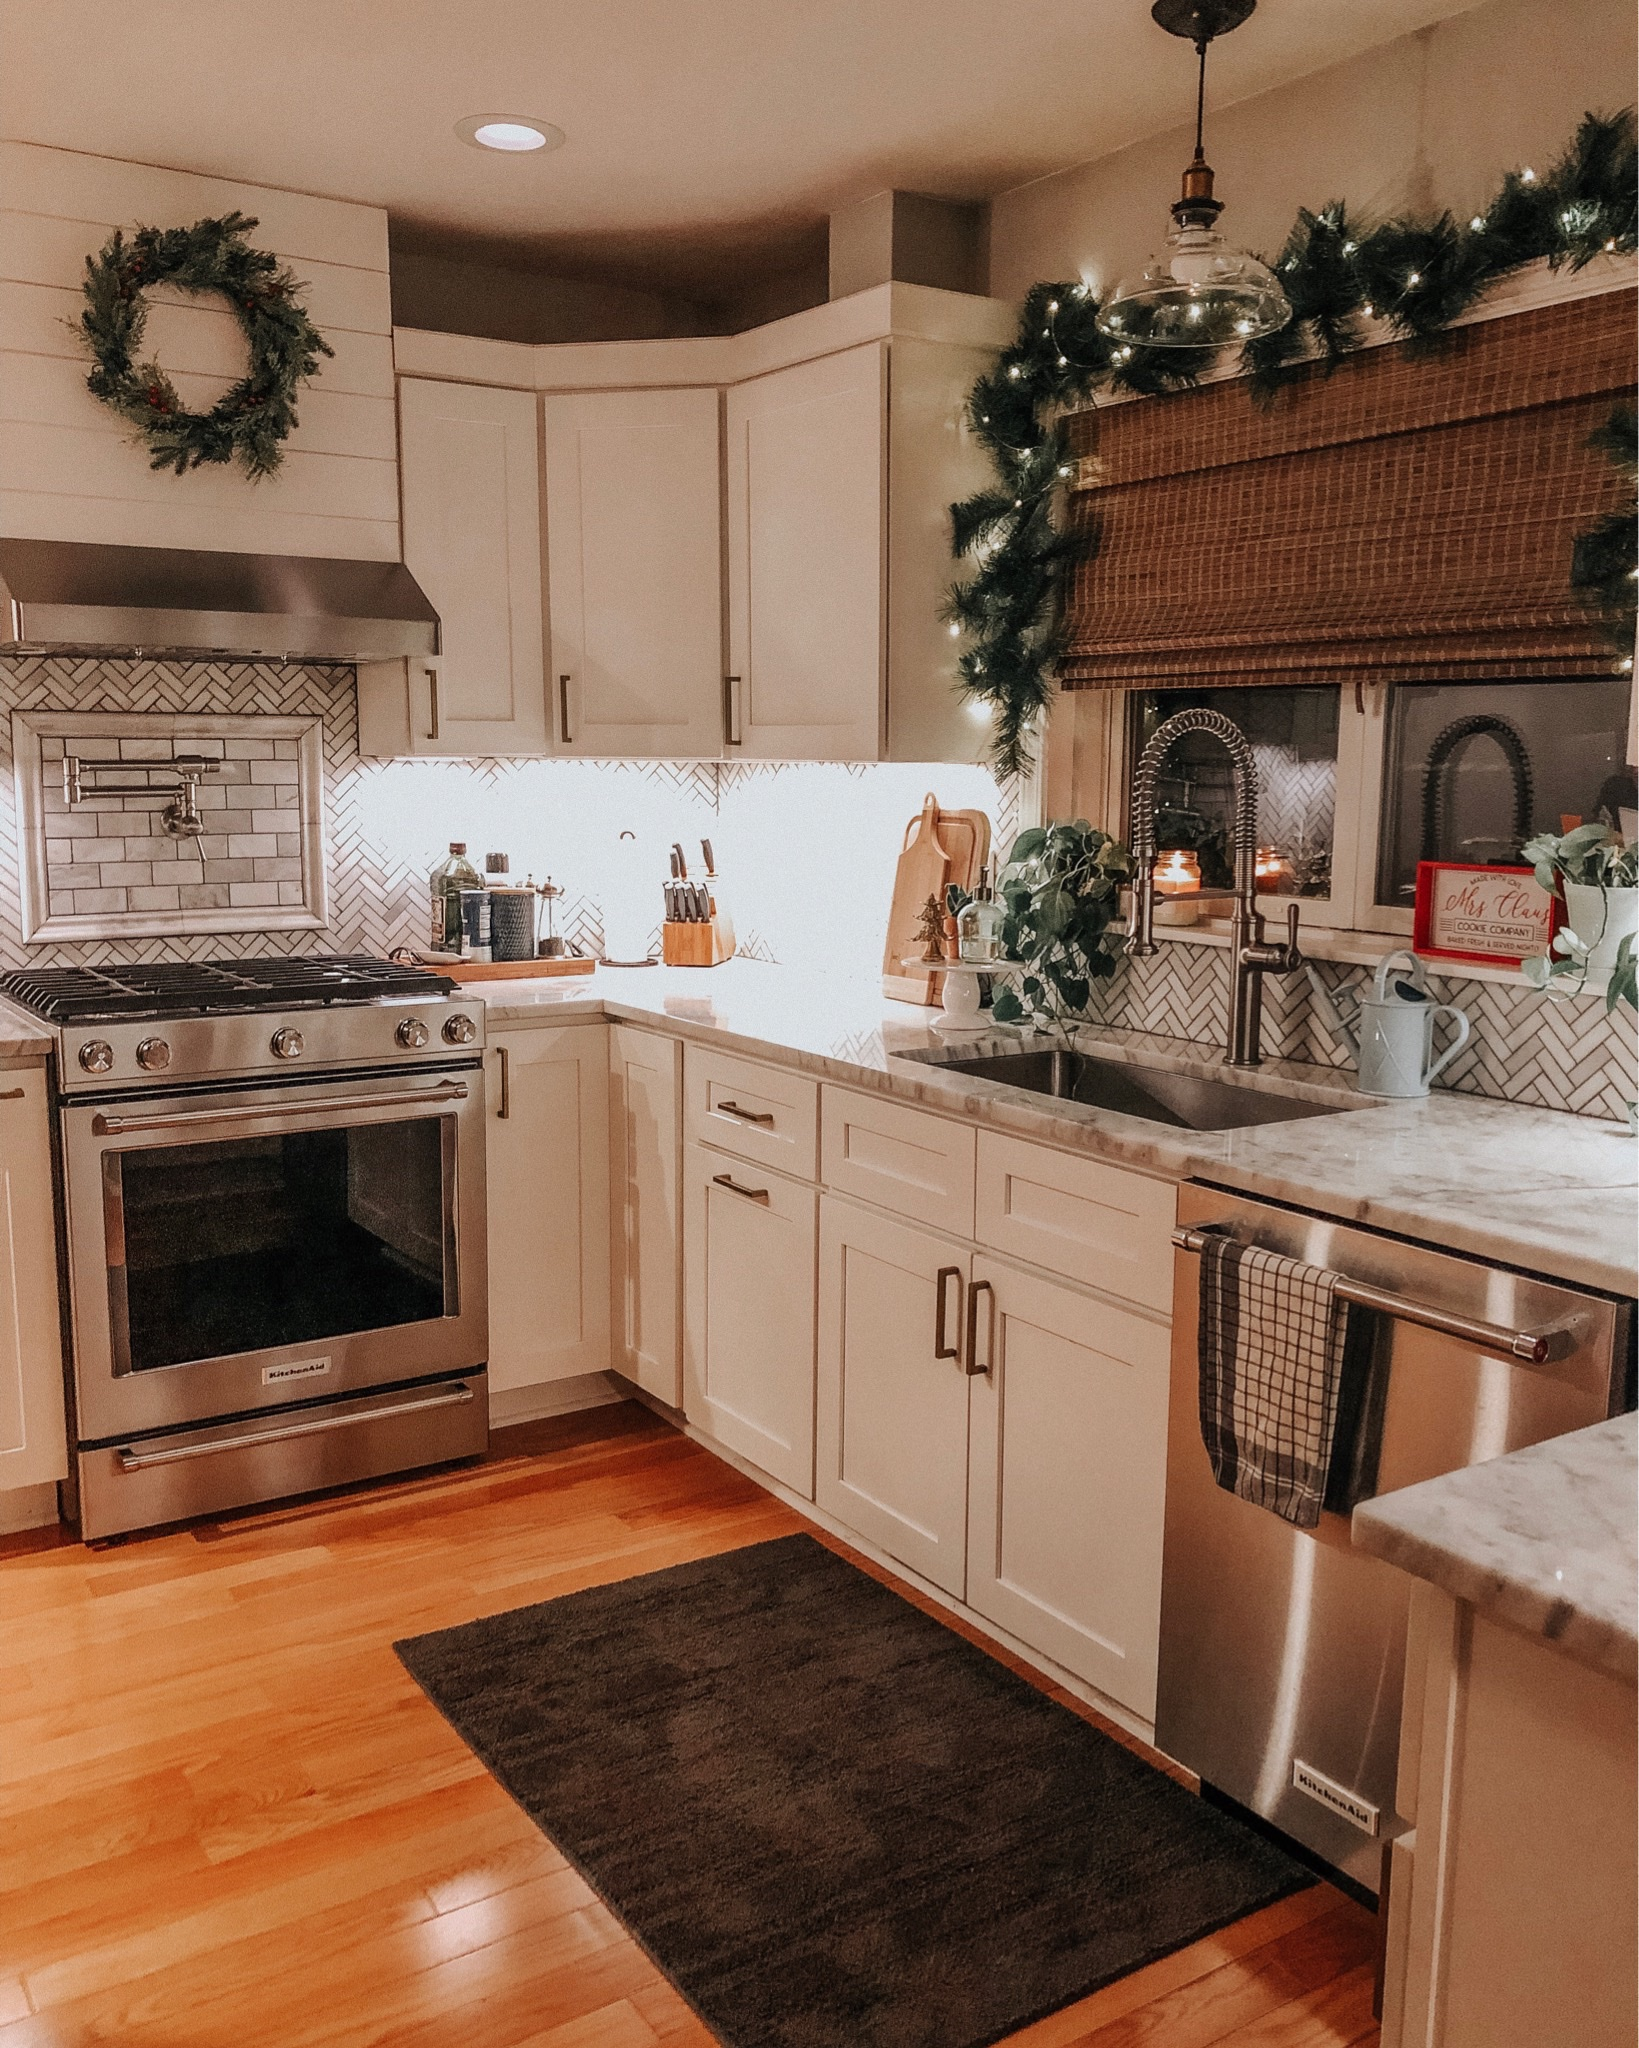 New Year sentiment and favorites from 2019 | Daily Splendor Life and Style Blog | top picture of 2019 #kitchen #kitchendesign #kitchengoals #whitekitchen #modernfarmhousekitchen #herringbonebacksplash